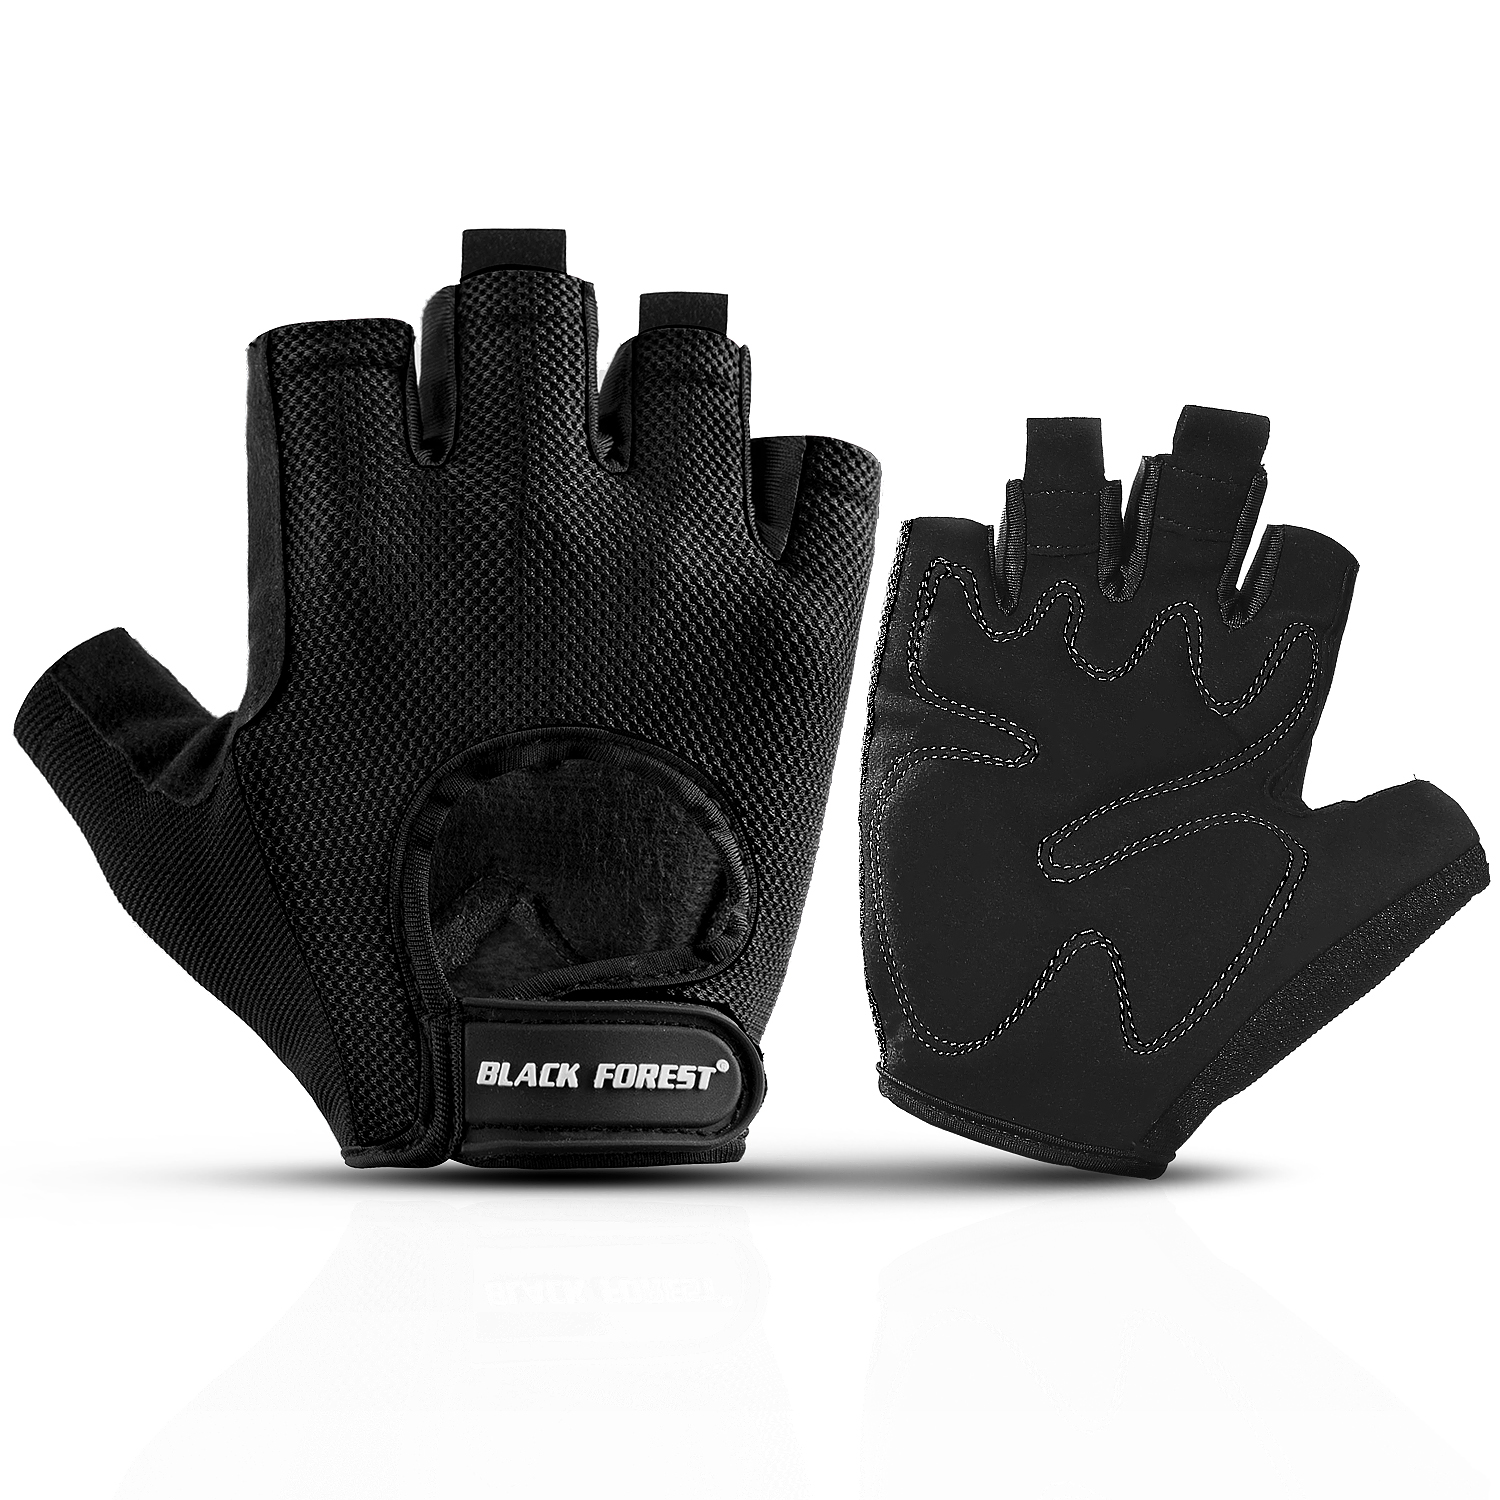 Weight Lifting Gloves Heavyweight Gym Gloves Sports Exercise Body Building Training Sport Fitness Gloves For Fiting Cycling steering wheel phone holder